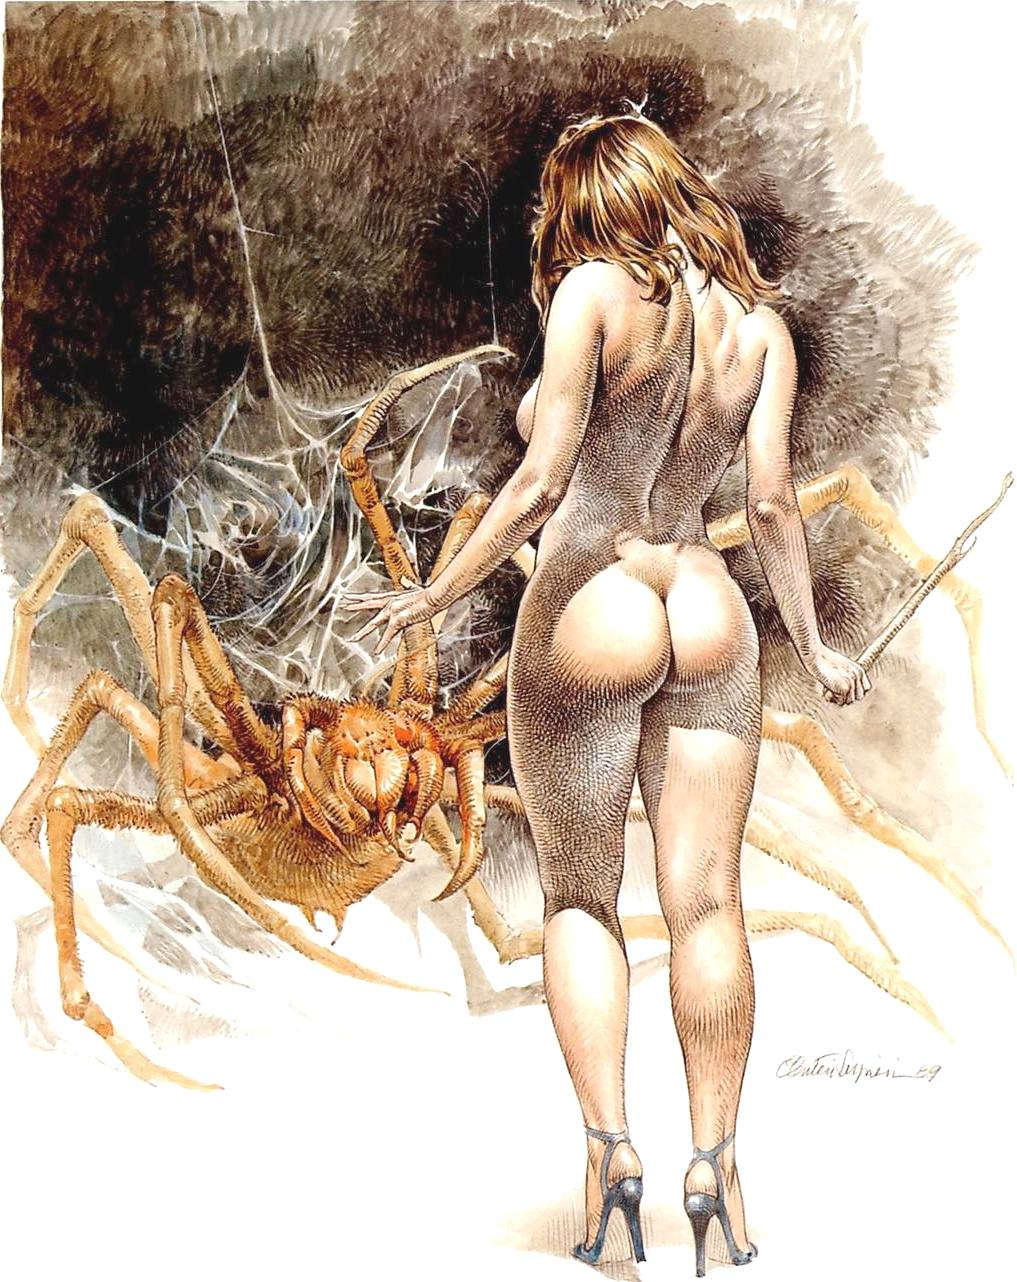 Druuna is an erotic science fiction and fantasy comic book character created by Italian cartoonist Paolo Eleuteri Serpieri.